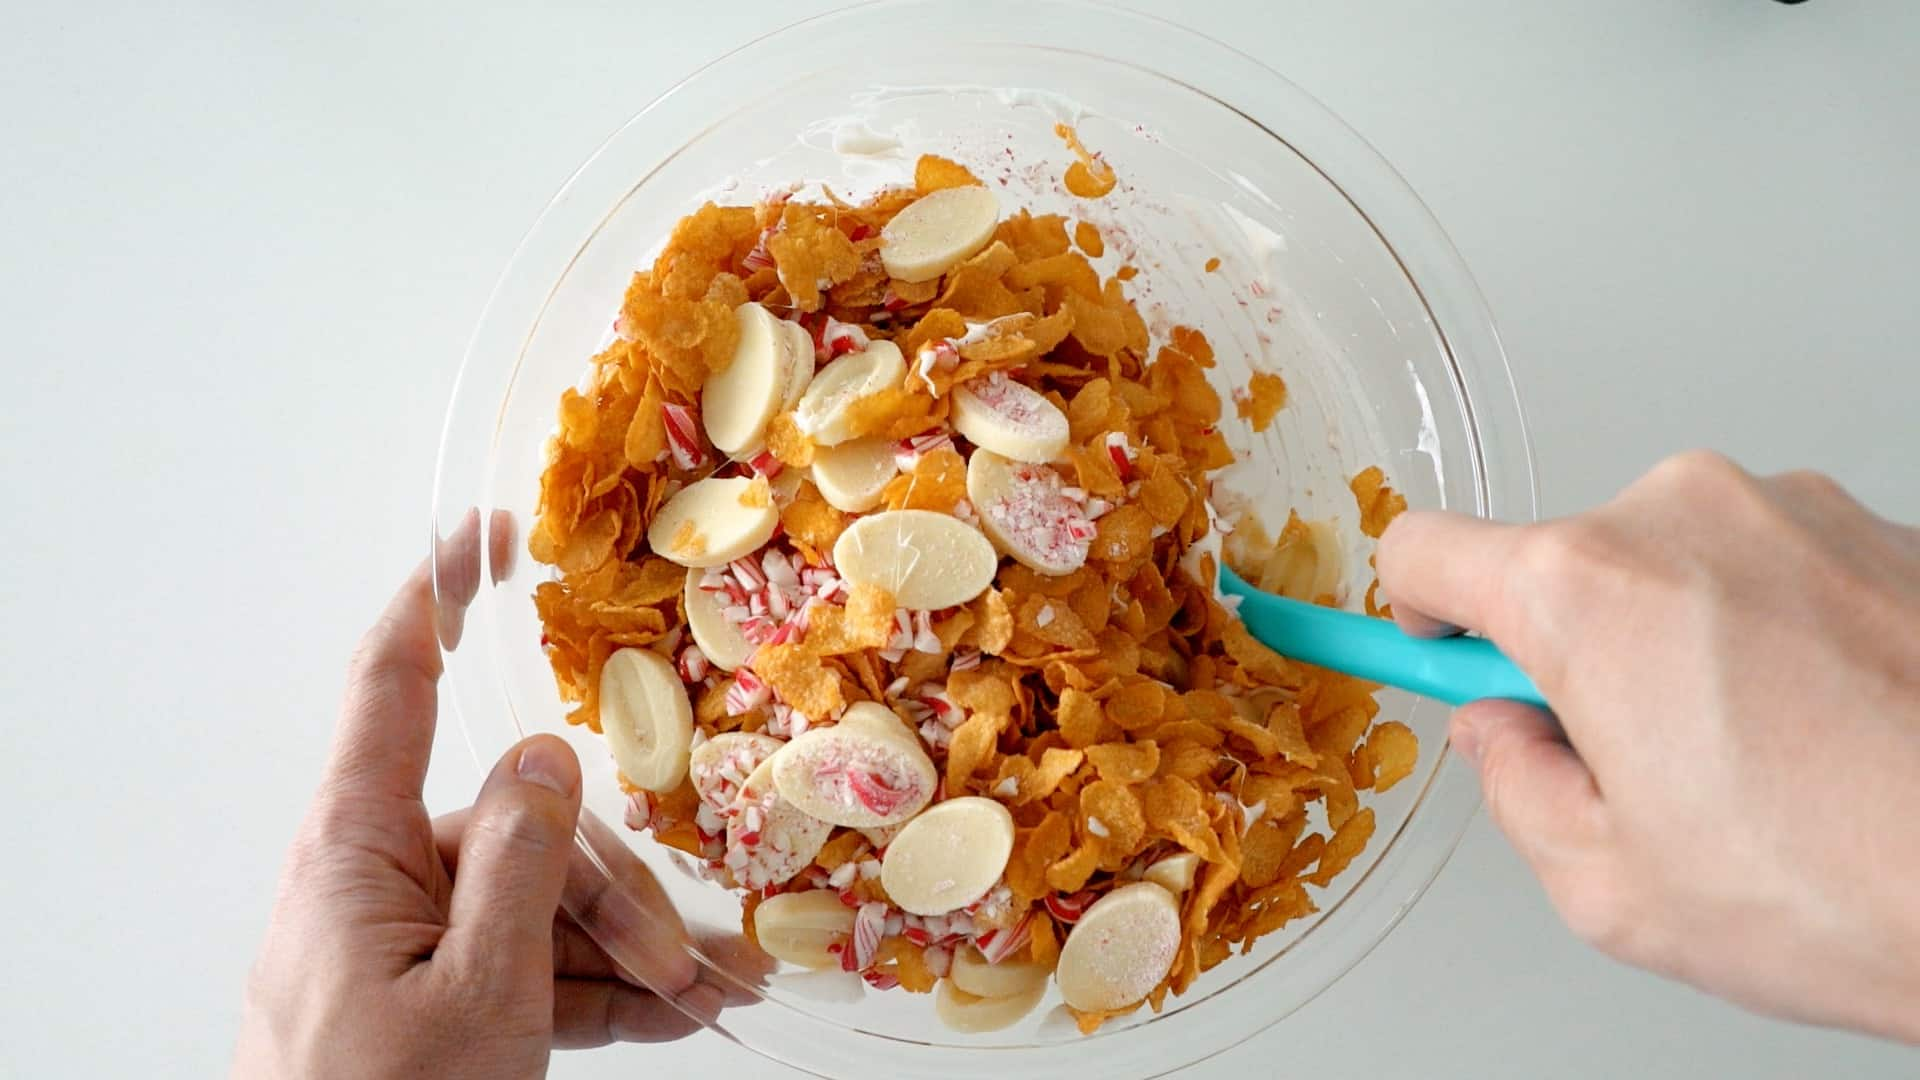 Add the cornflakes, crushed candy cane and white chocolate to the marshmallow mixture and stir.